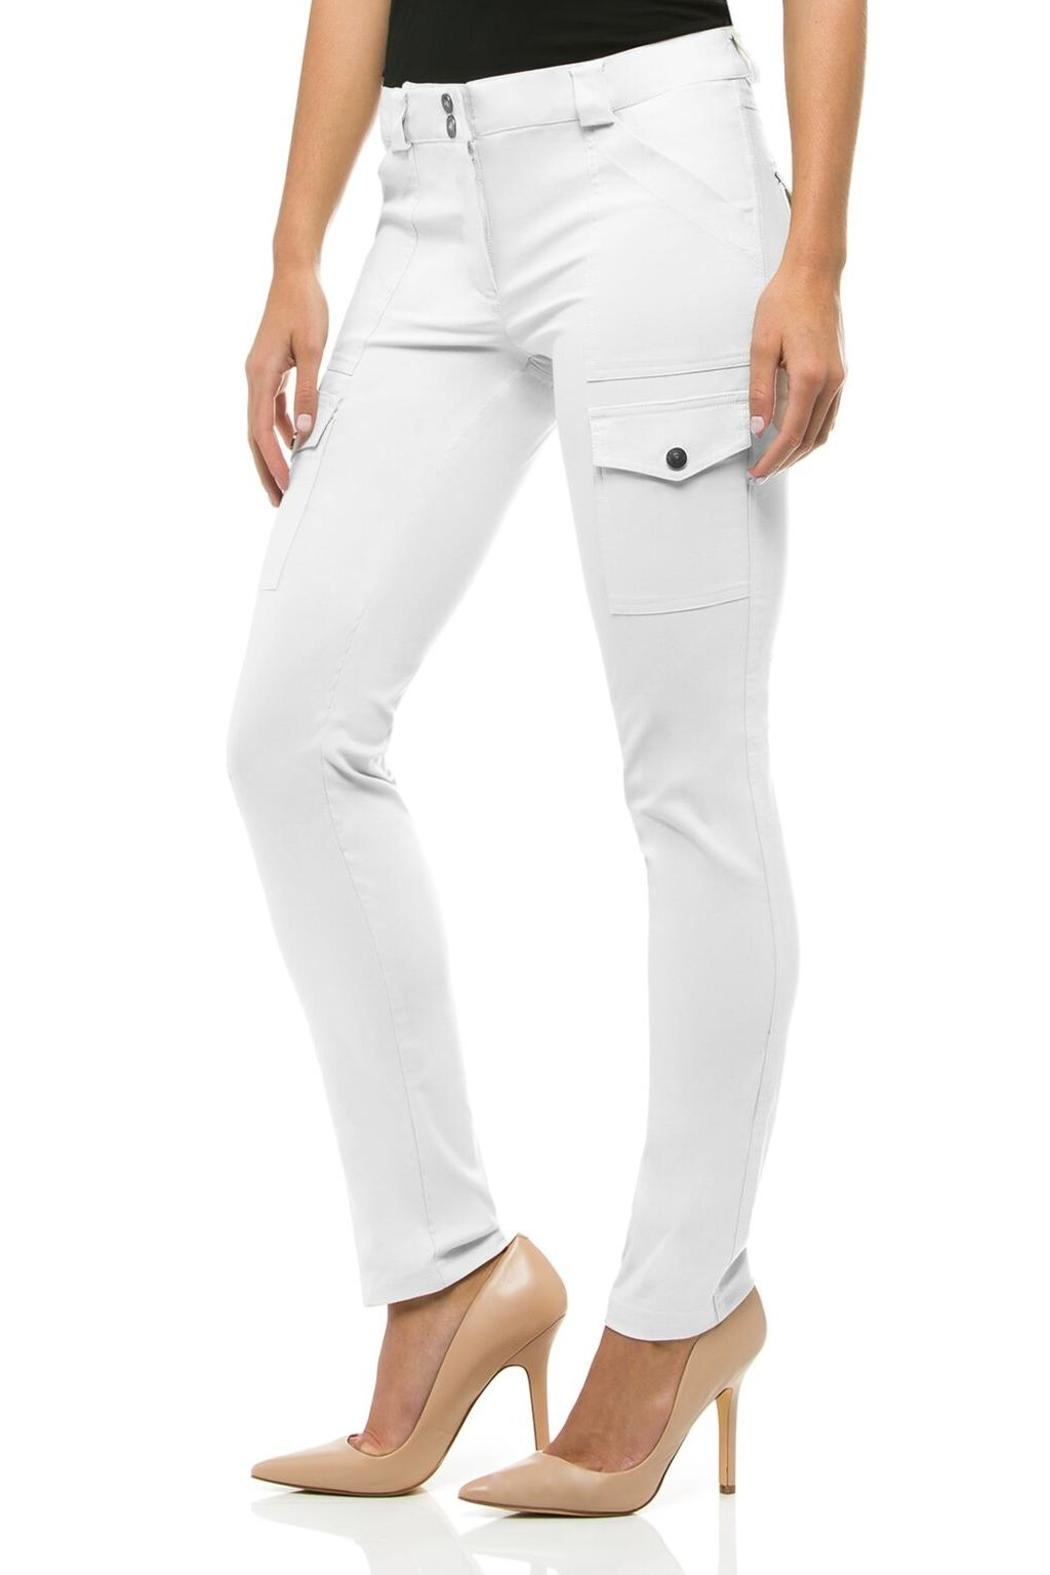 Anatomie Kate Cargo Pants from Florida by Gyrotonic Satnam — Shoptiques